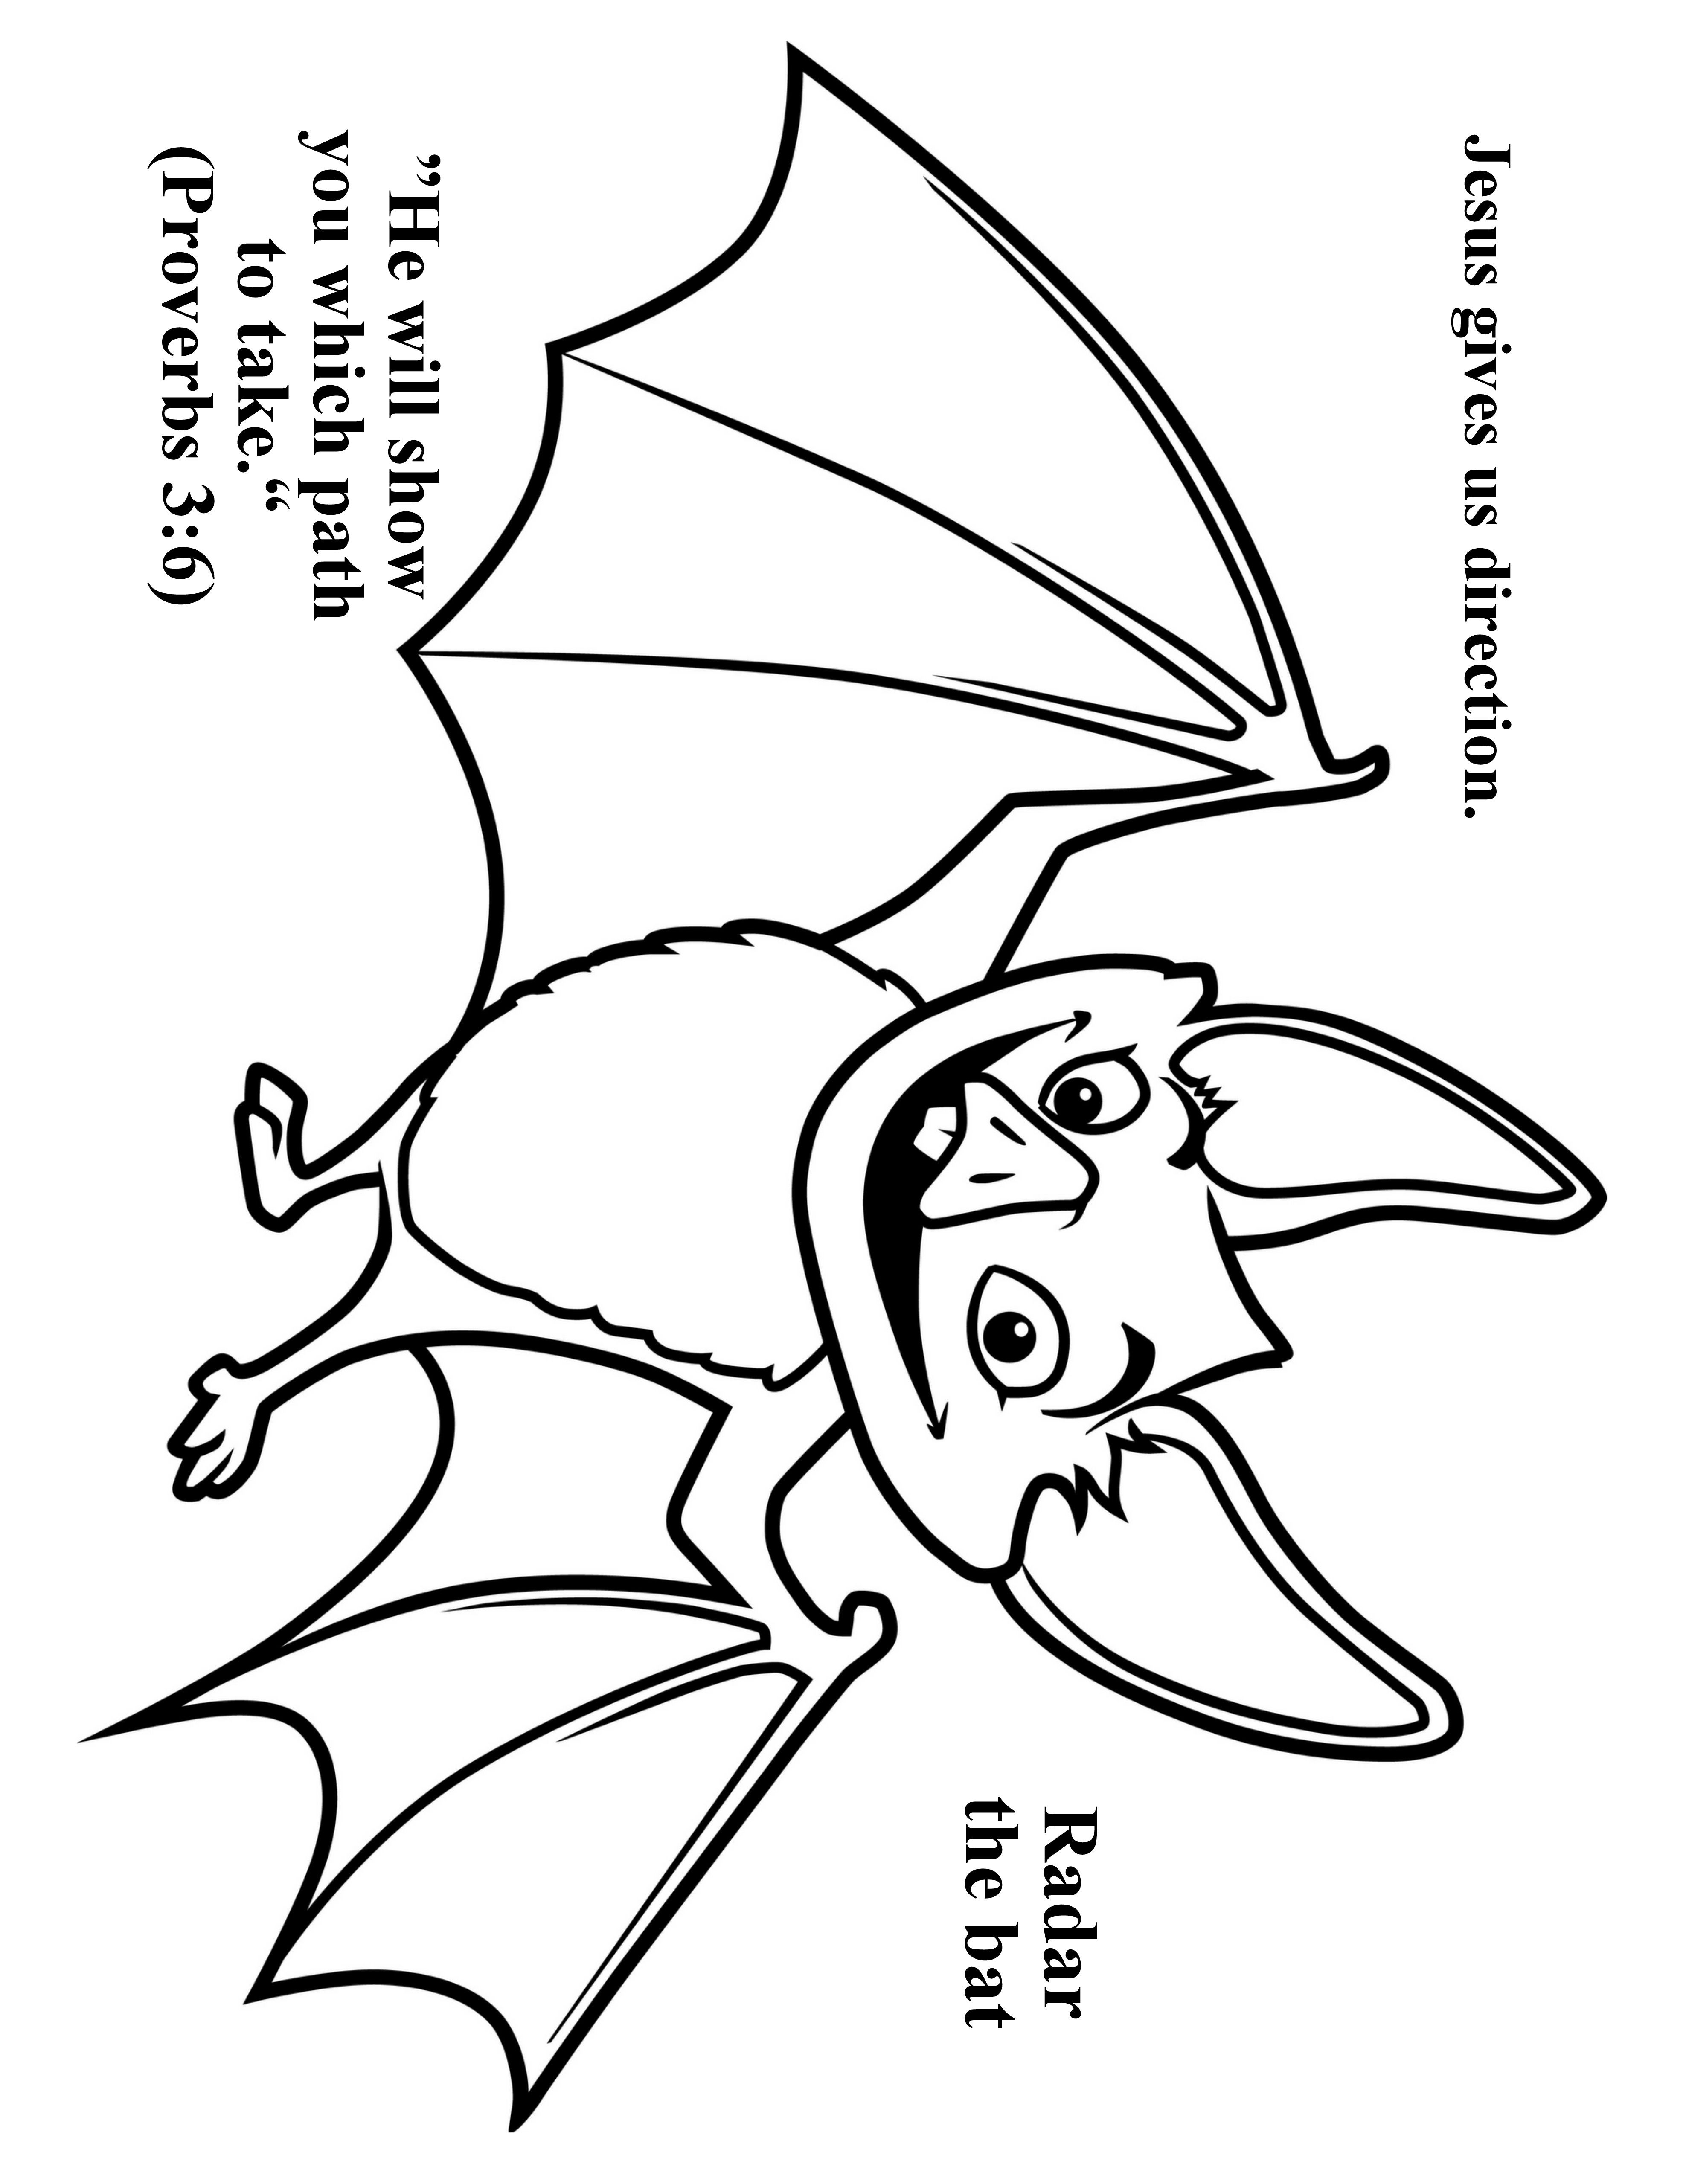 30 Sunday School Coloring Pages for Preschoolers Download - Coloring